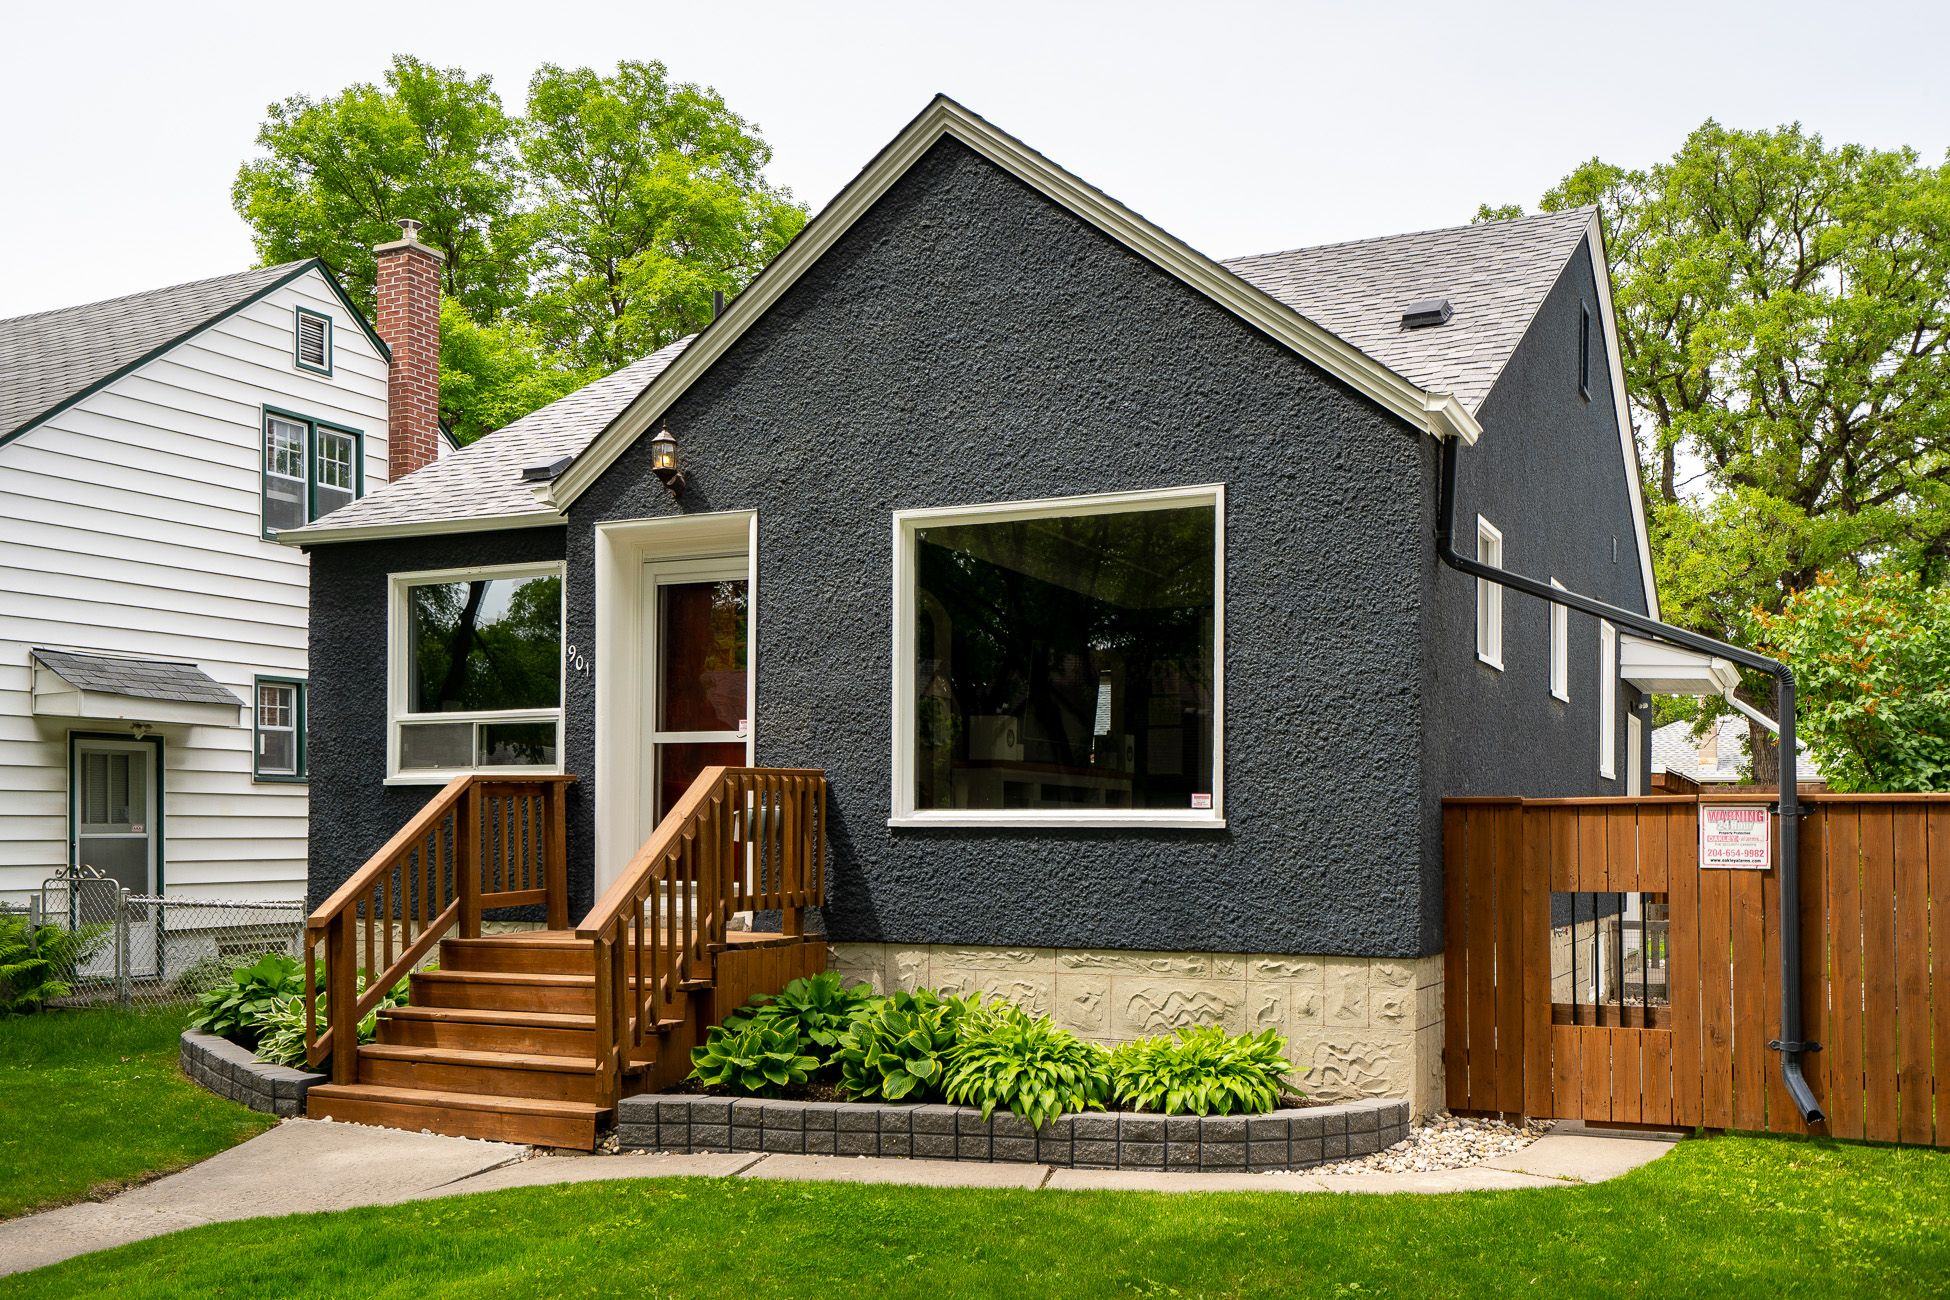 Main Photo: 901 Dudley Avenue in Winnipeg: Crescentwood House for sale (1Bw)  : MLS®# 202114157